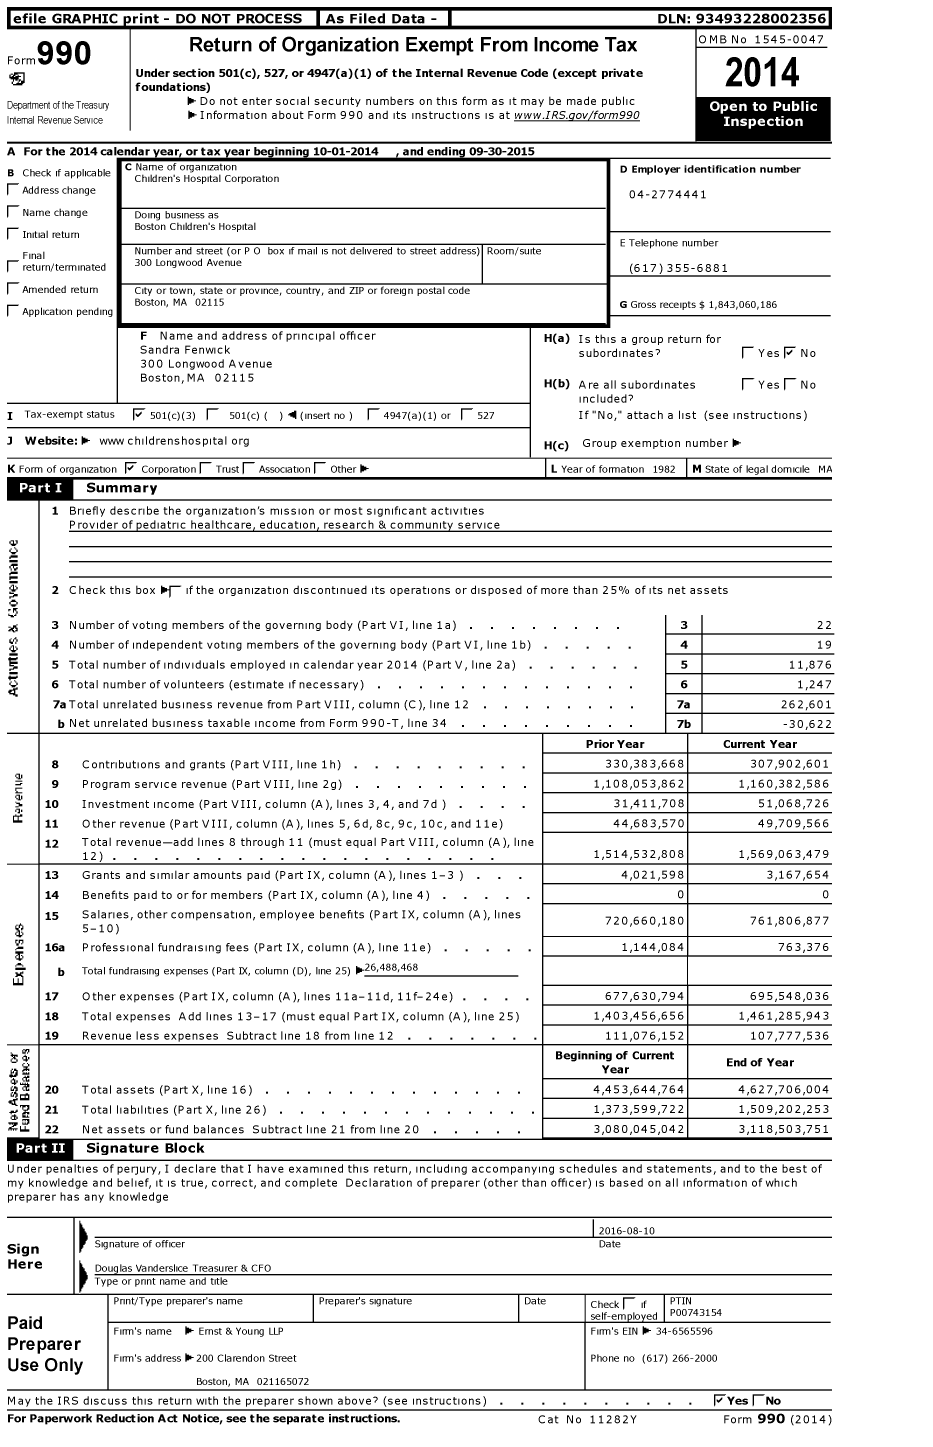 Image of first page of 2014 Form 990 for Boston Children's Hospital